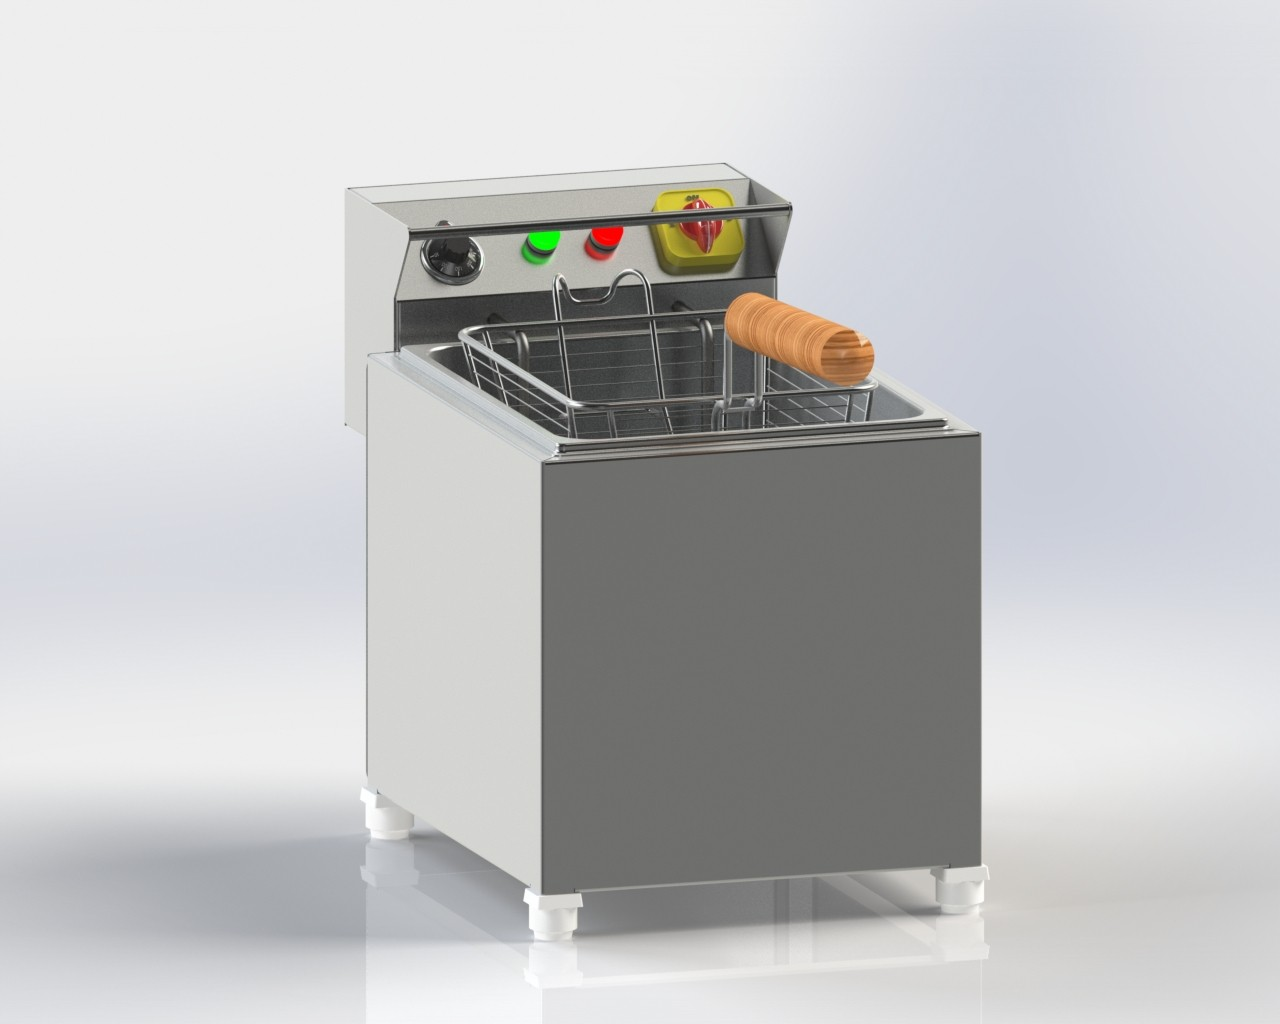 Table Top Deep Fat Fryer